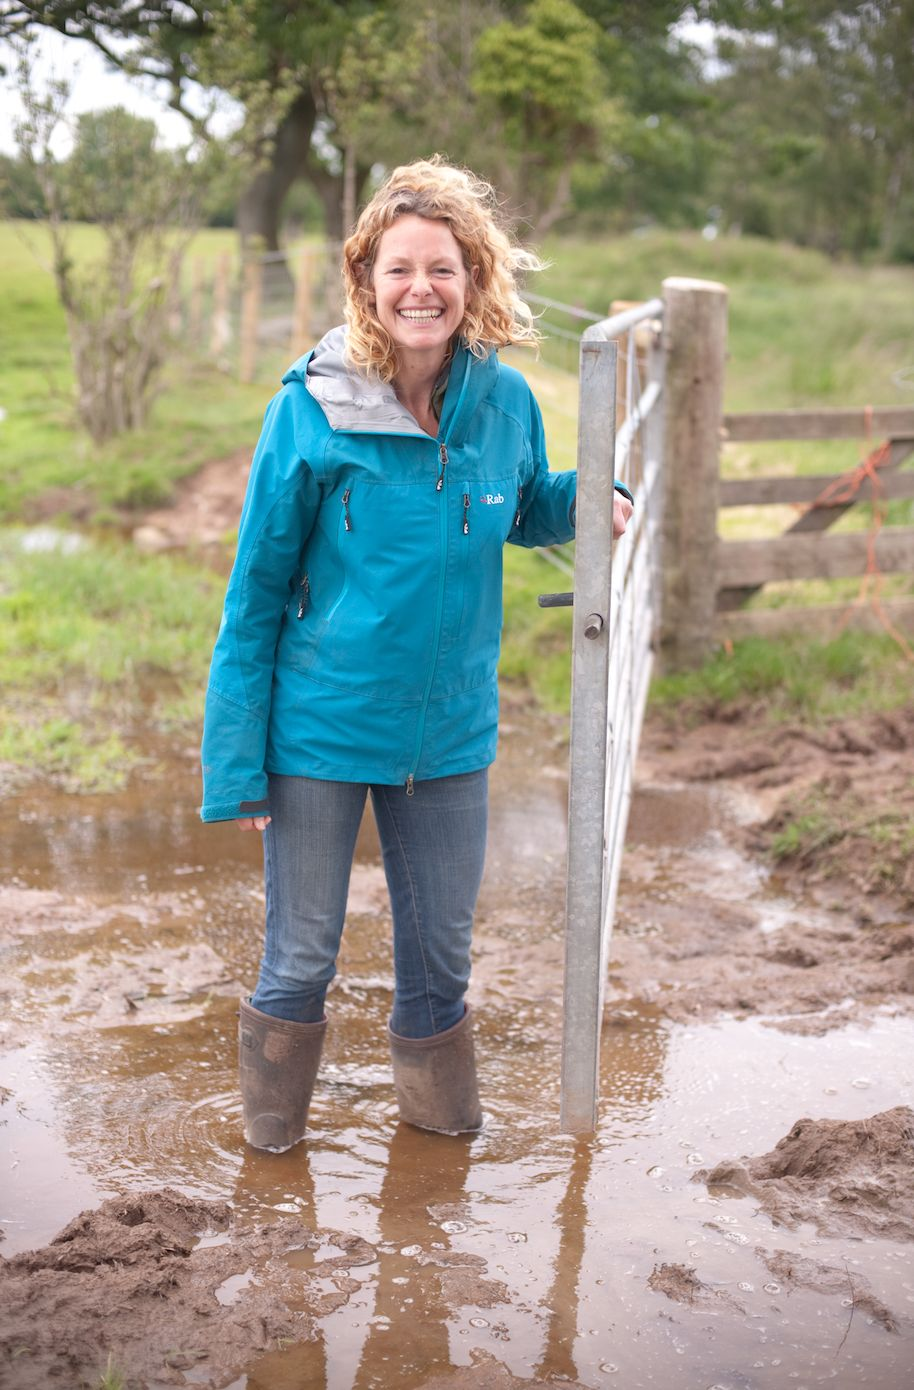 Kate Humble: 'Daily Walks To Watch The Sunrise Help Me Regain